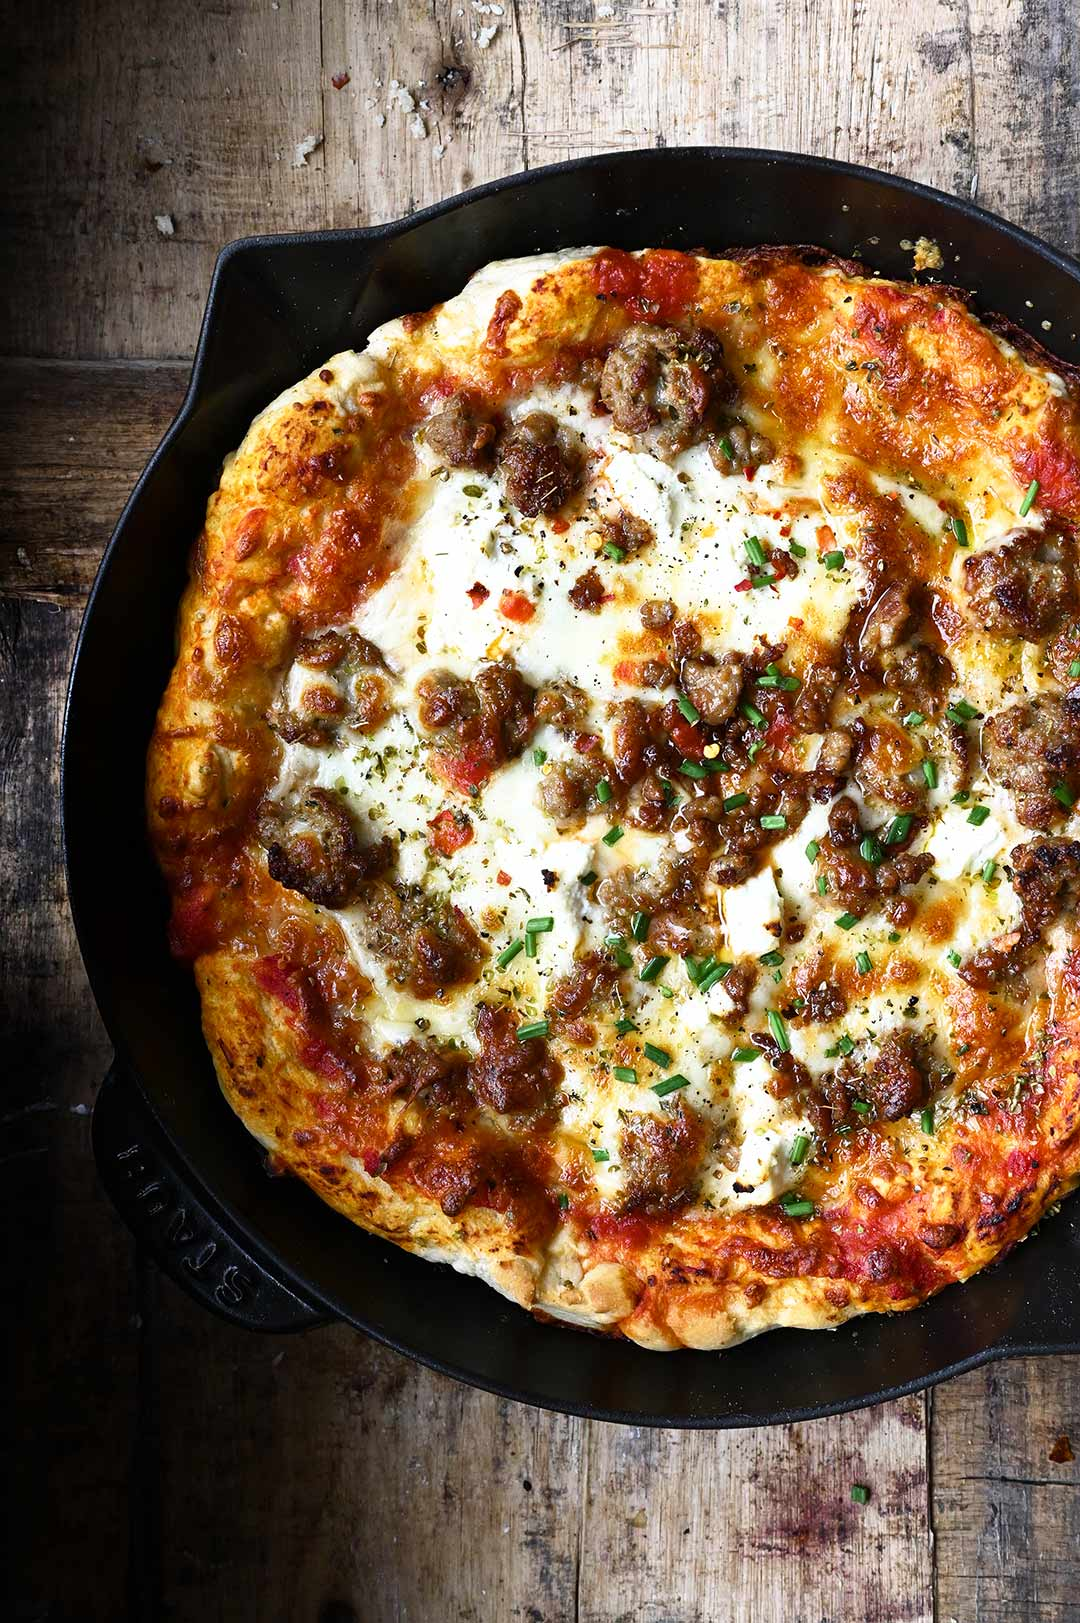 serving dumplings | Easy Sausage Cast Iron Skillet Pizza